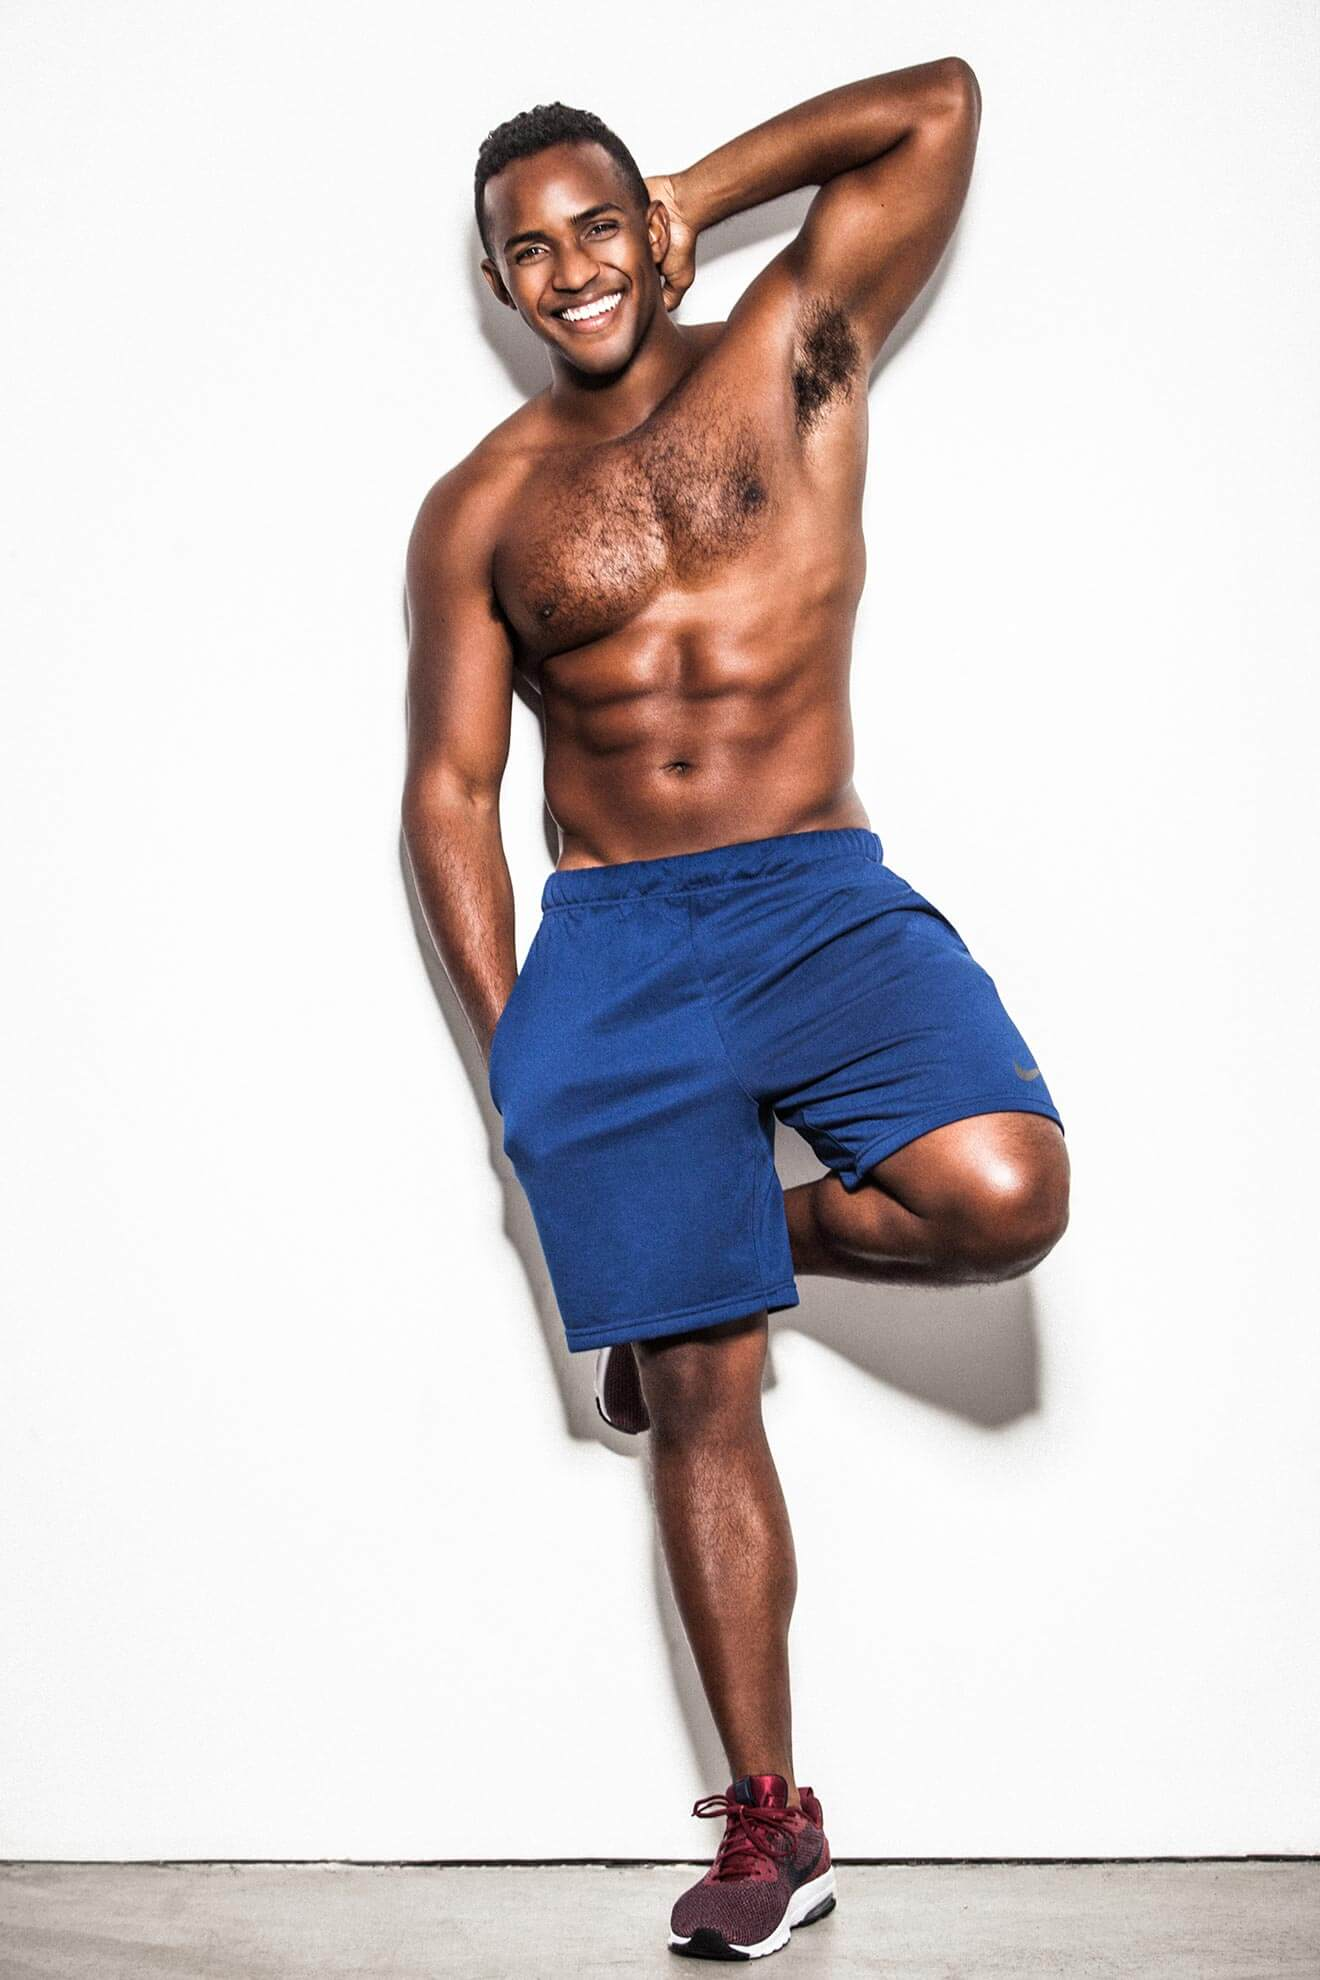 Chillin' with Sterling Sulieman, blue shorts topless pose